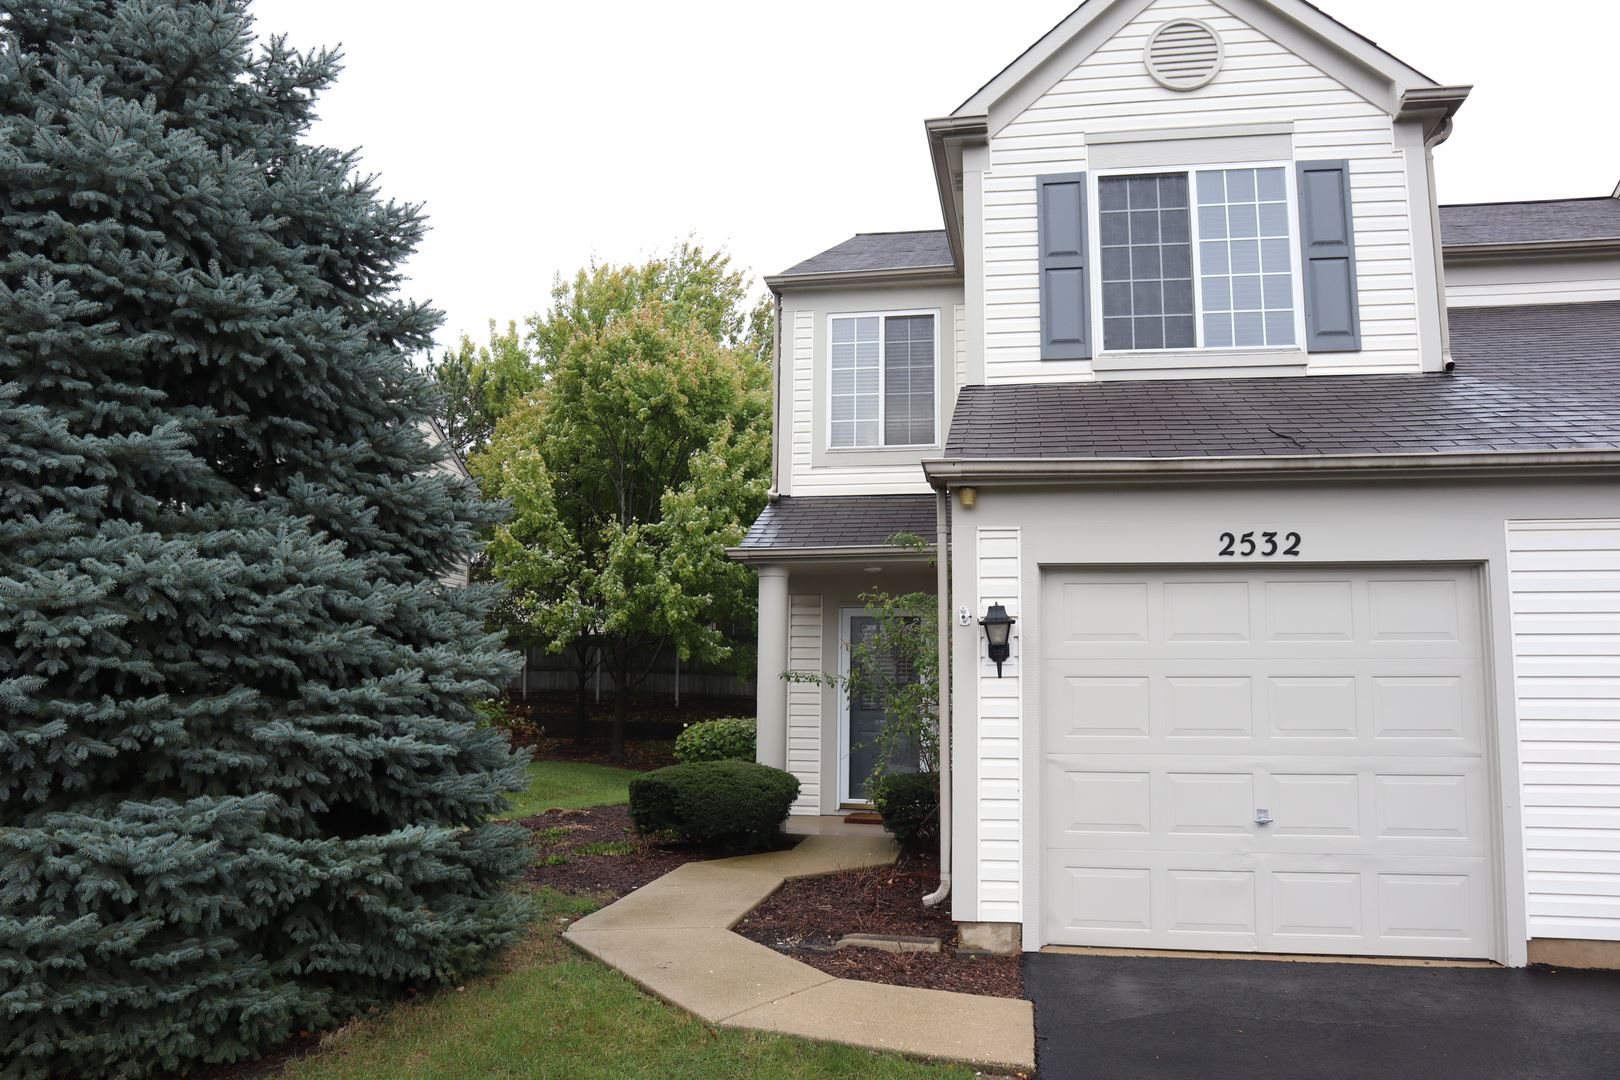 Photo of 2532 Carrolwood Road, Naperville, IL 60540 (MLS # 11255339)